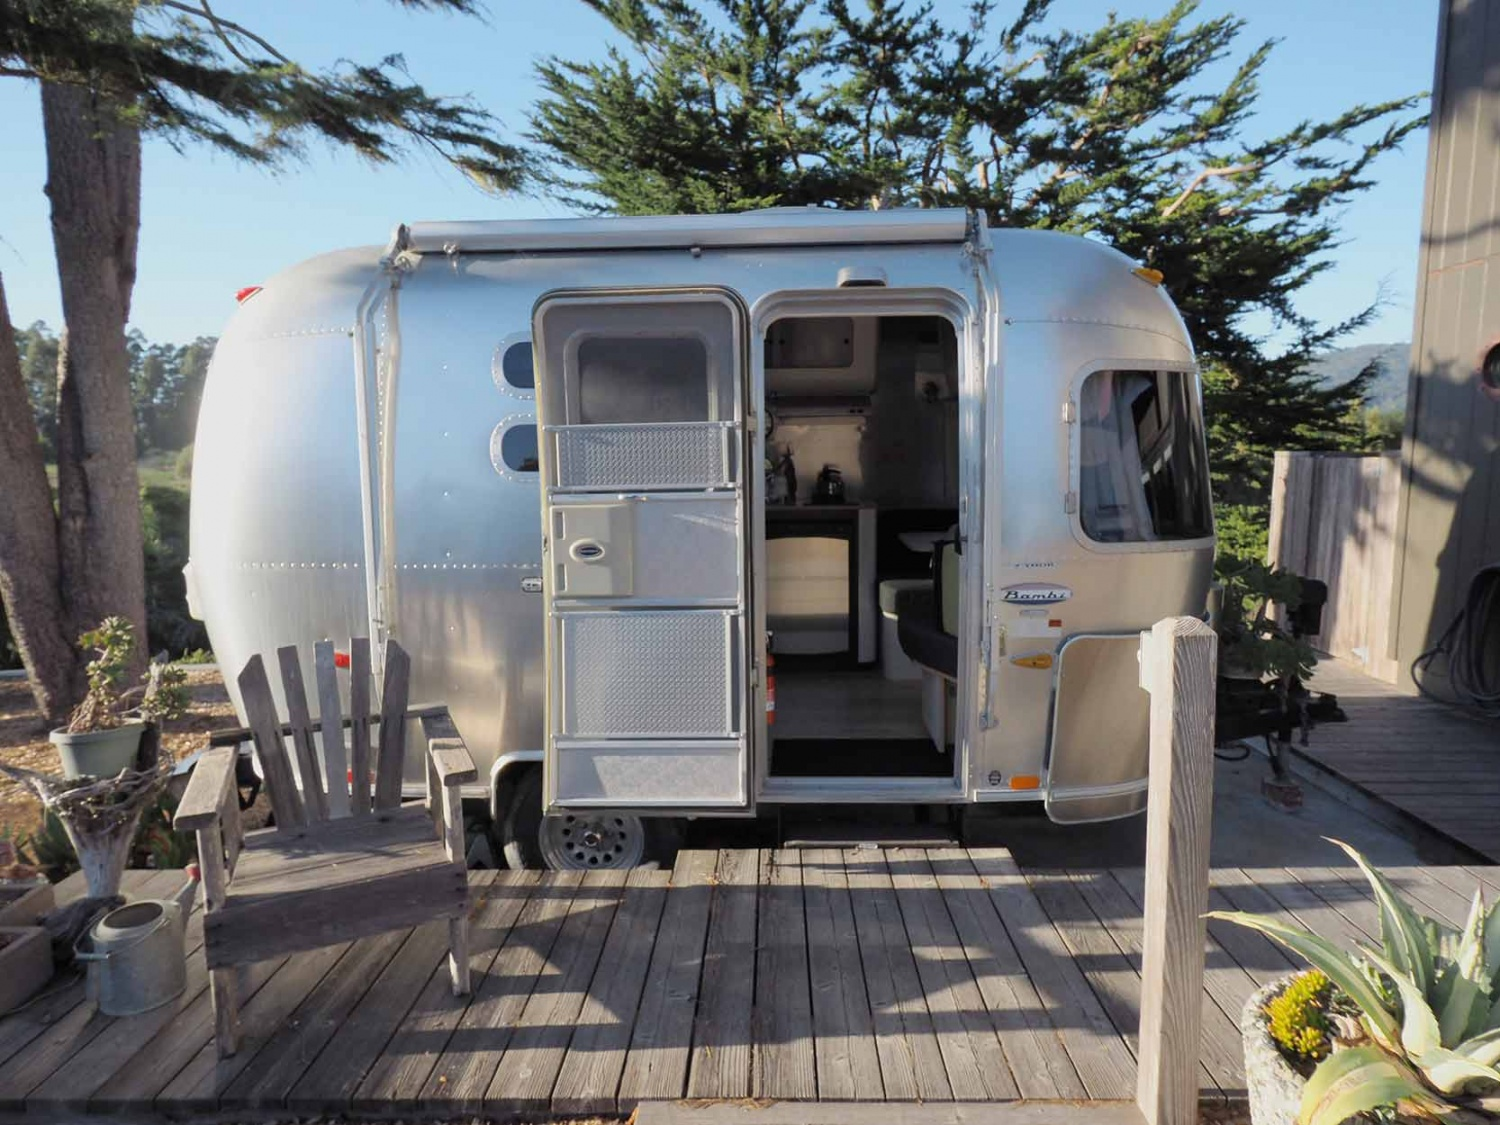 Remodeling A House Where To Start Falling In Love With An Airstream Trailer The Shelter Blog